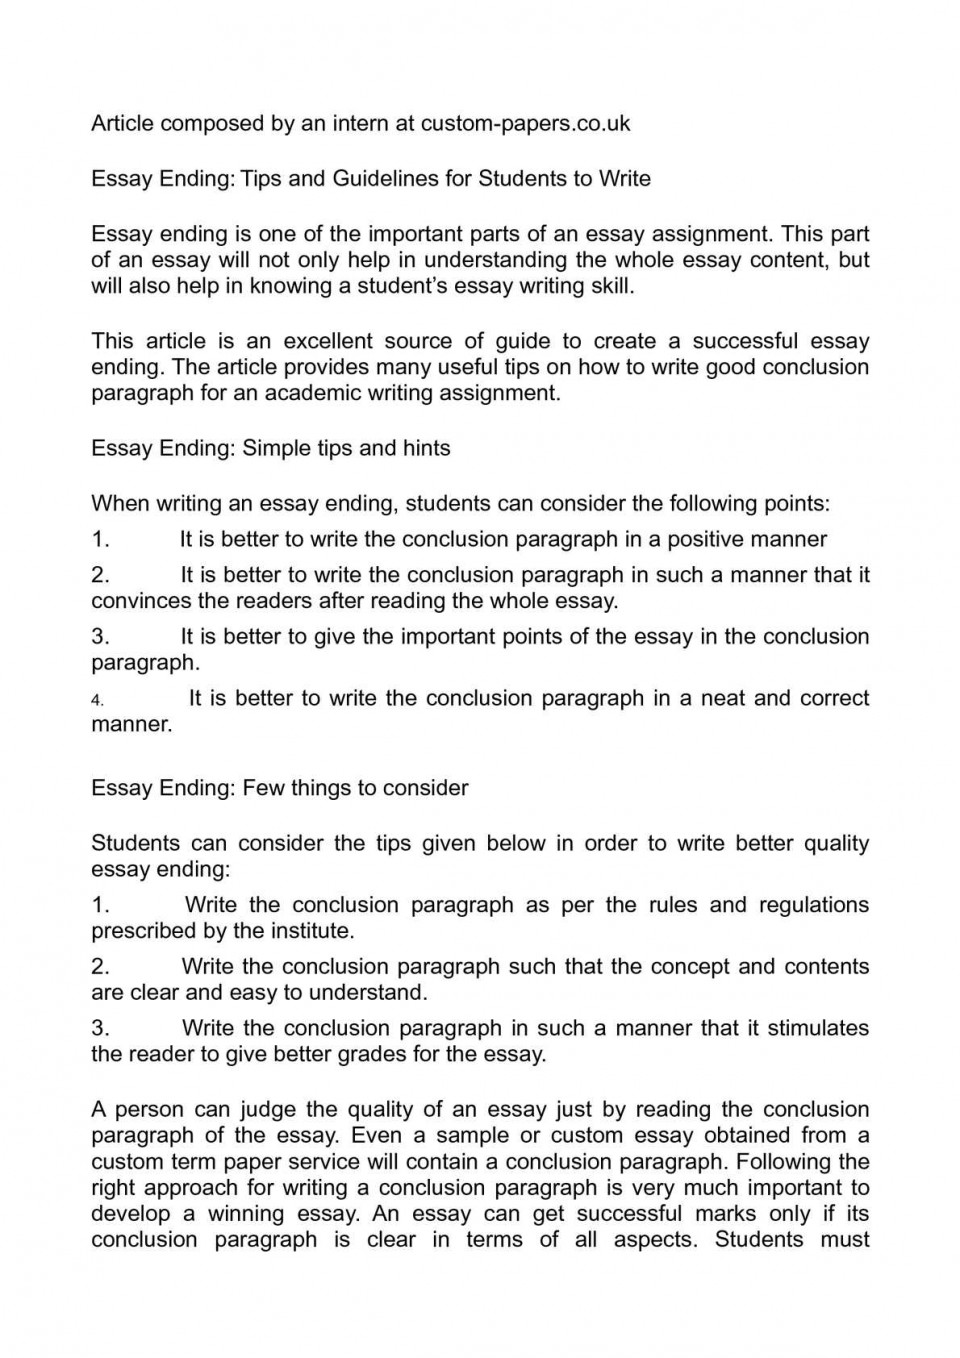 001 Parts Of An Essay Ending Tips And Guidelines For Students To Write Writing Persuasi Pdf Three Persuasive Stupendous Argumentative The Ppt Powerpoint Presentation 960